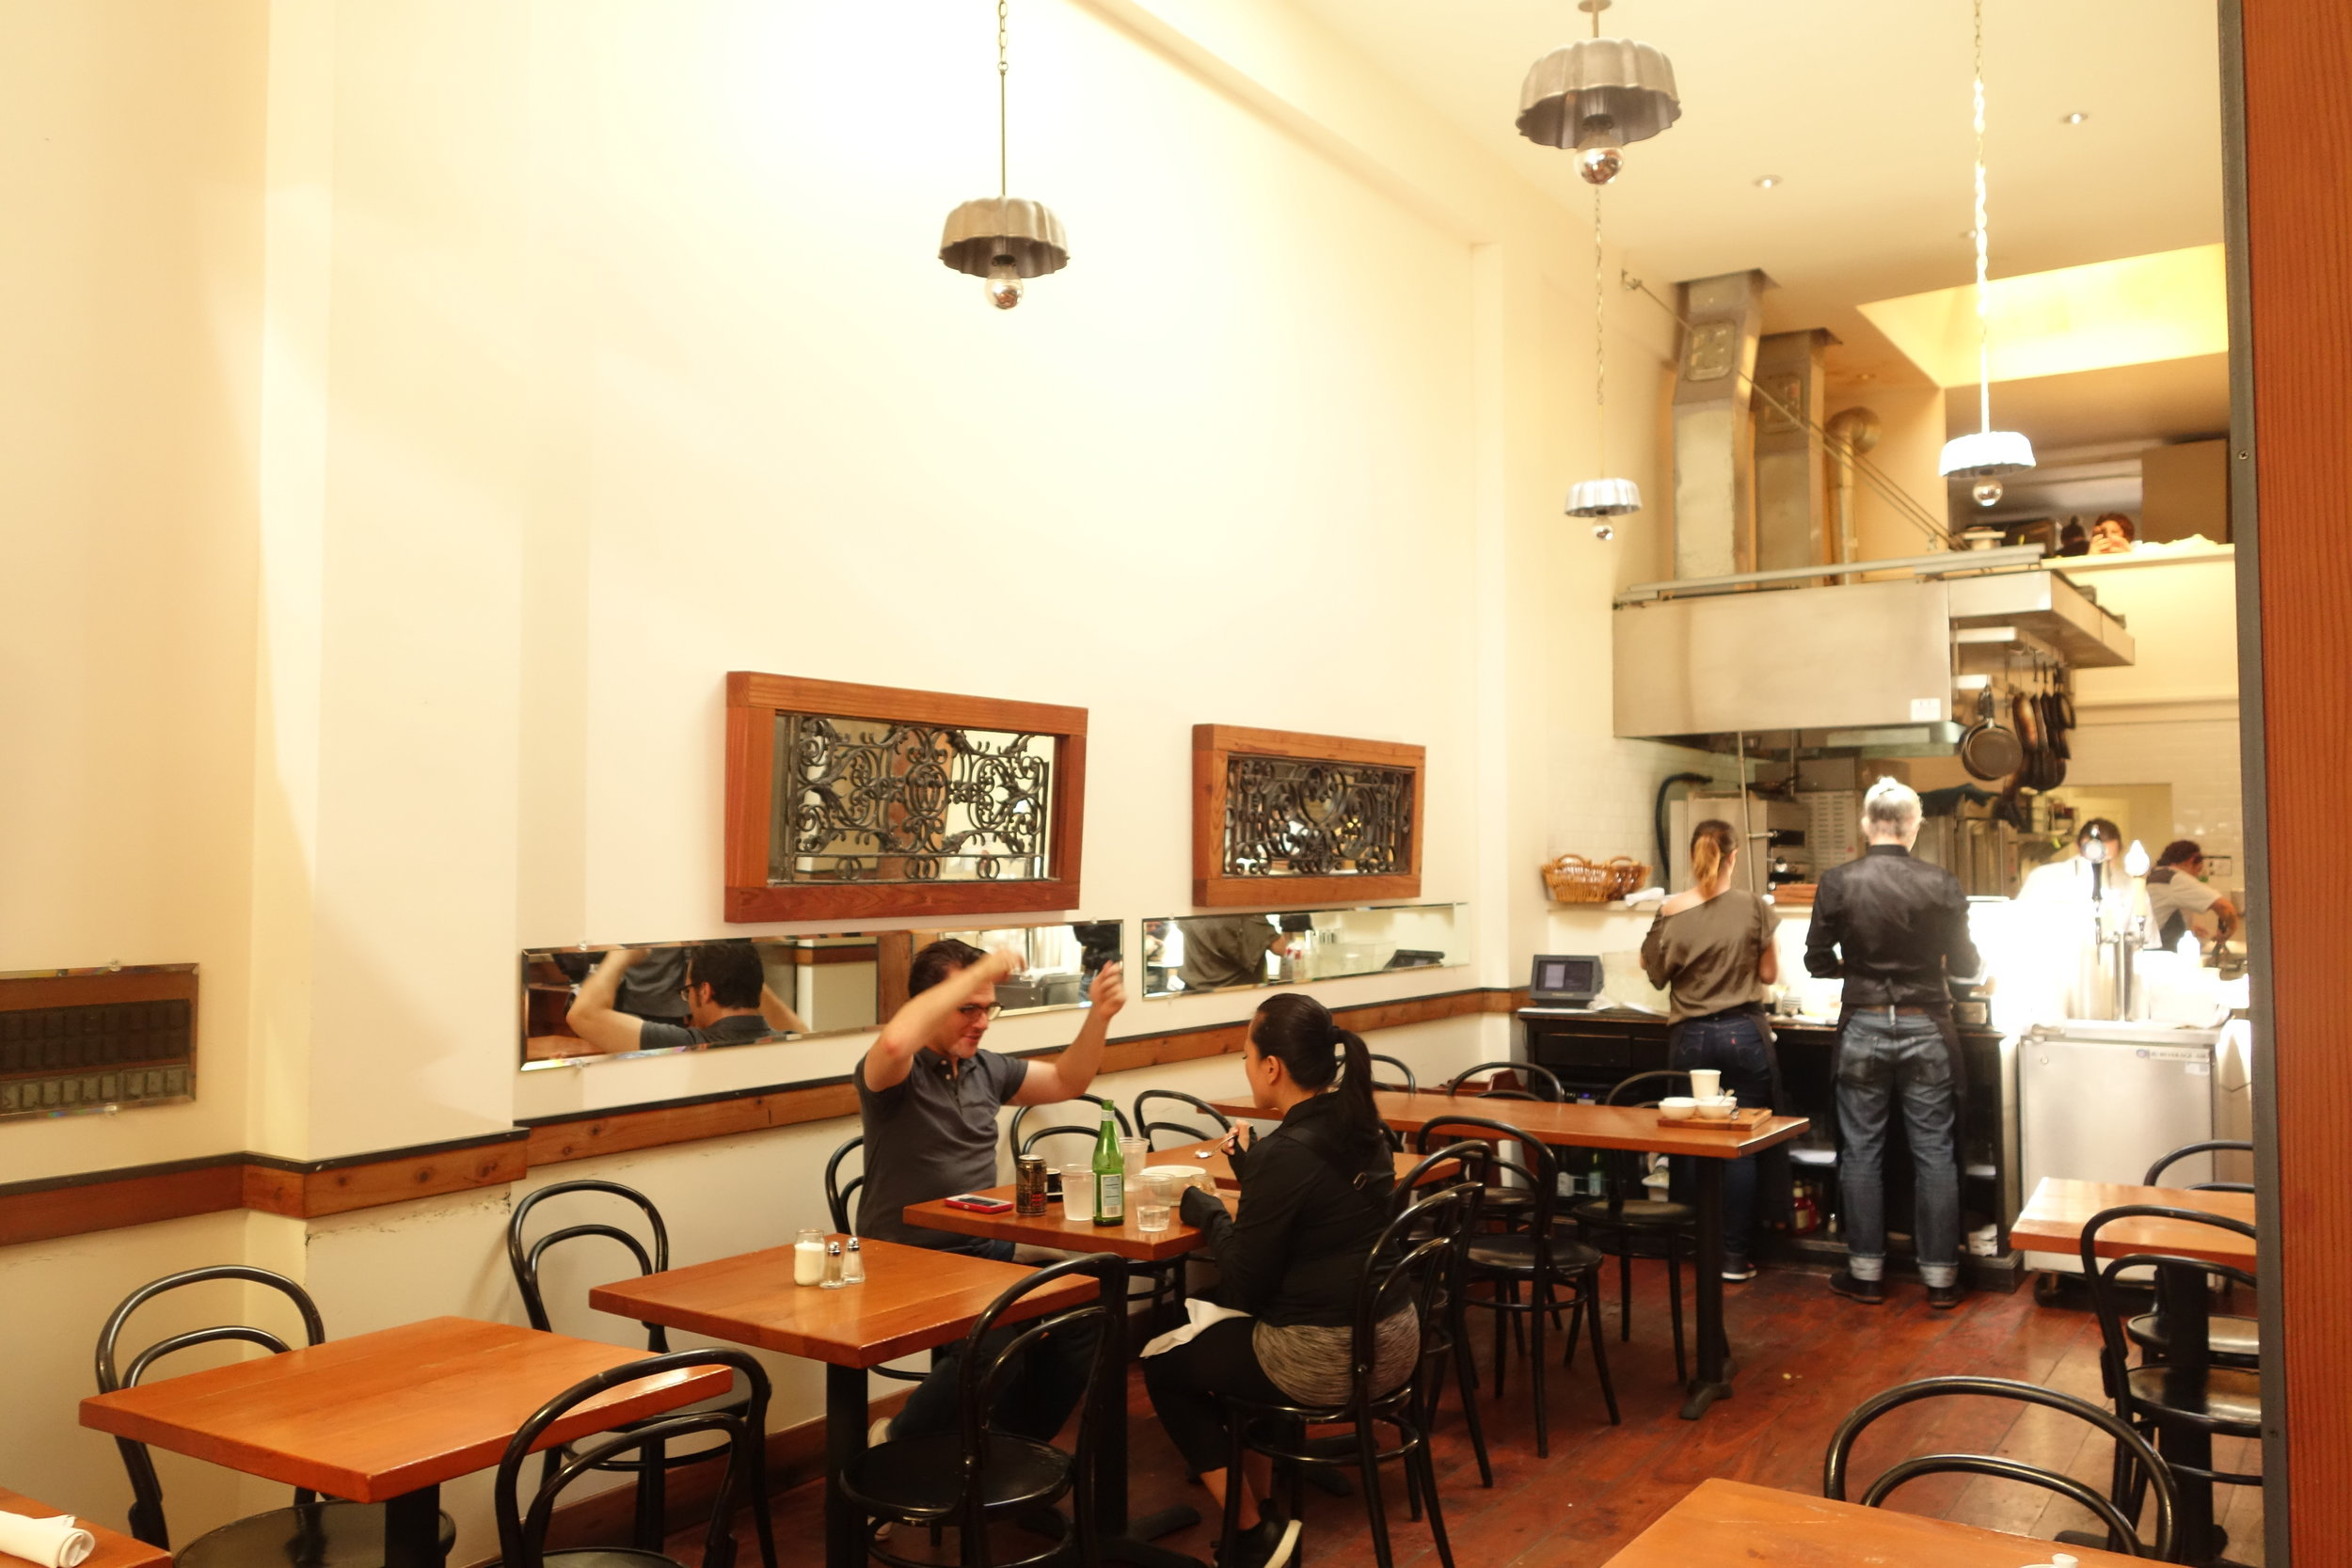 le-marais-bakery-and-bistro-marina-sf-san-francisco-sf-food-photography-sandy-by-the-bay-blog-18